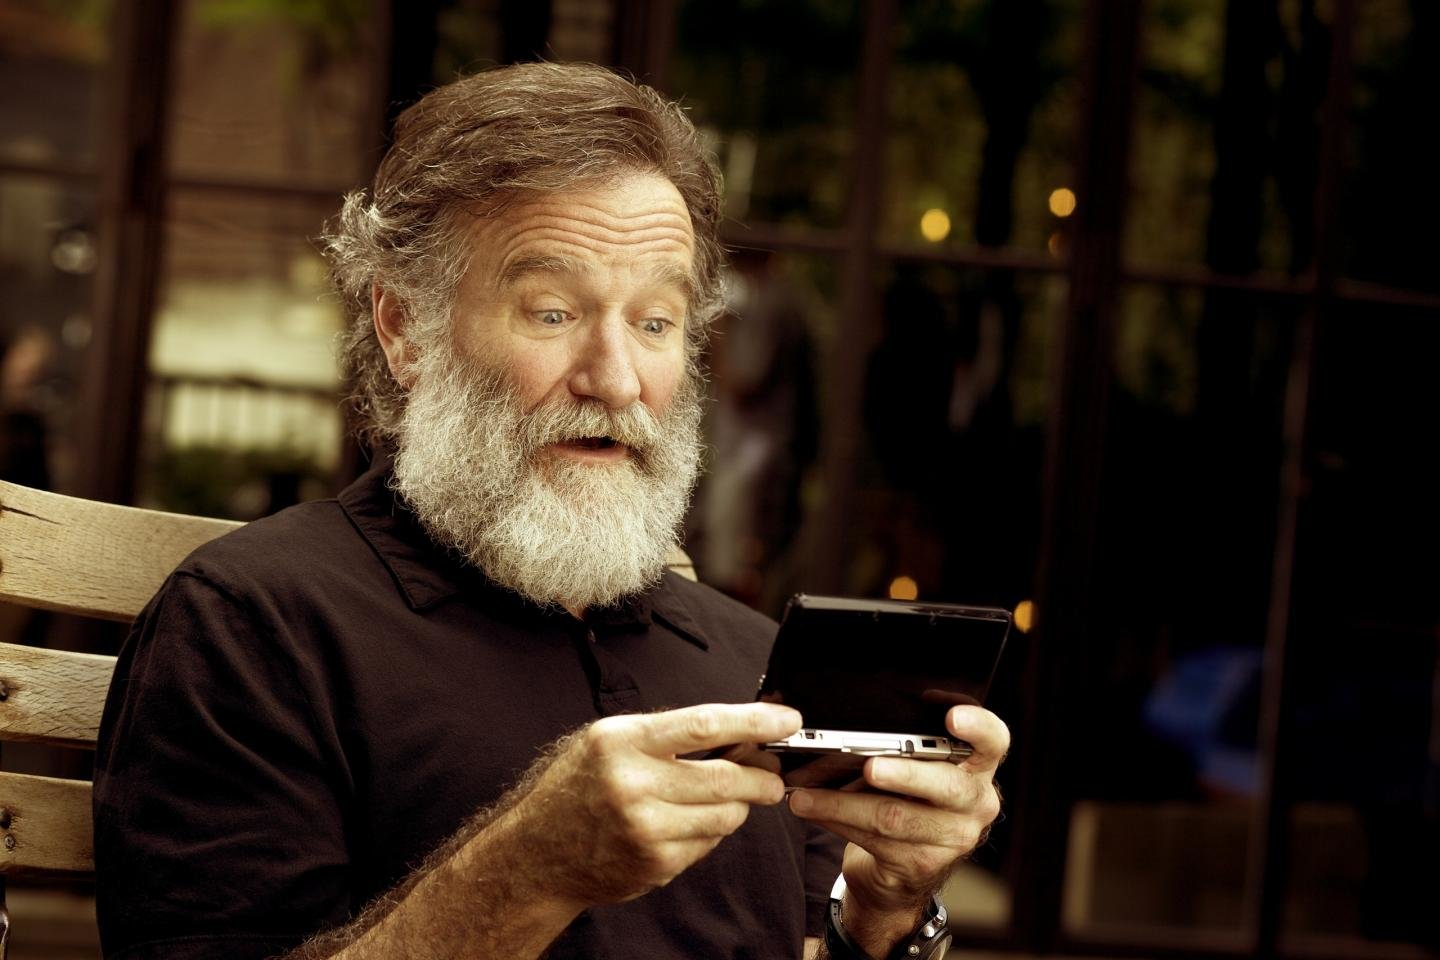 Free Robin Williams high quality background ID:72959 for hd 1440x960 desktop